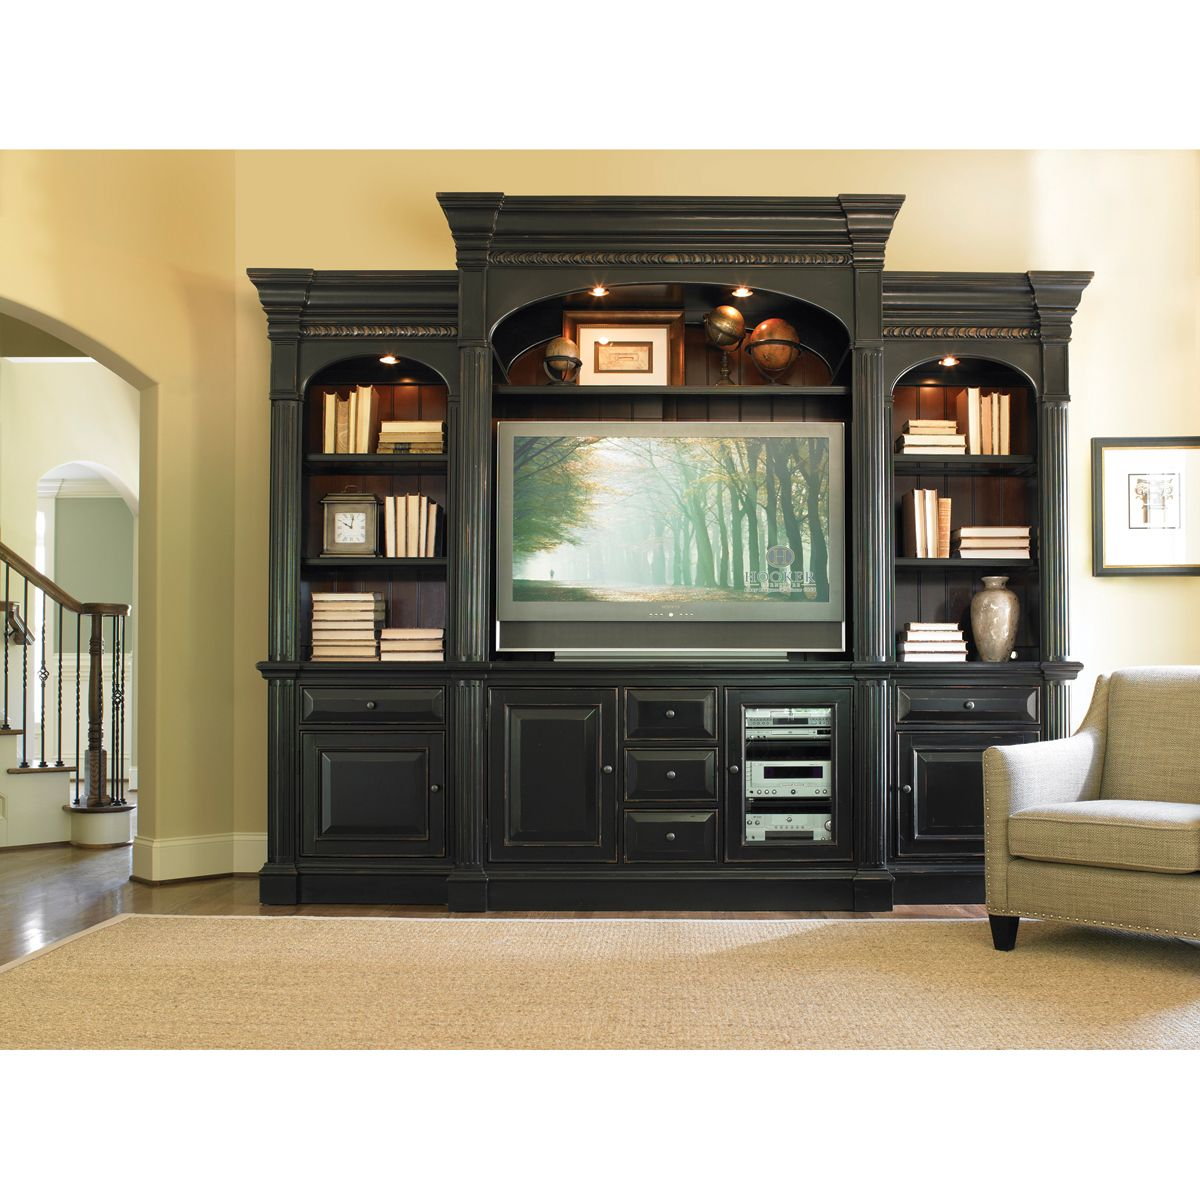 4 piece entertainment wall unit for the home entertainment center entertainment wall units. Black Bedroom Furniture Sets. Home Design Ideas